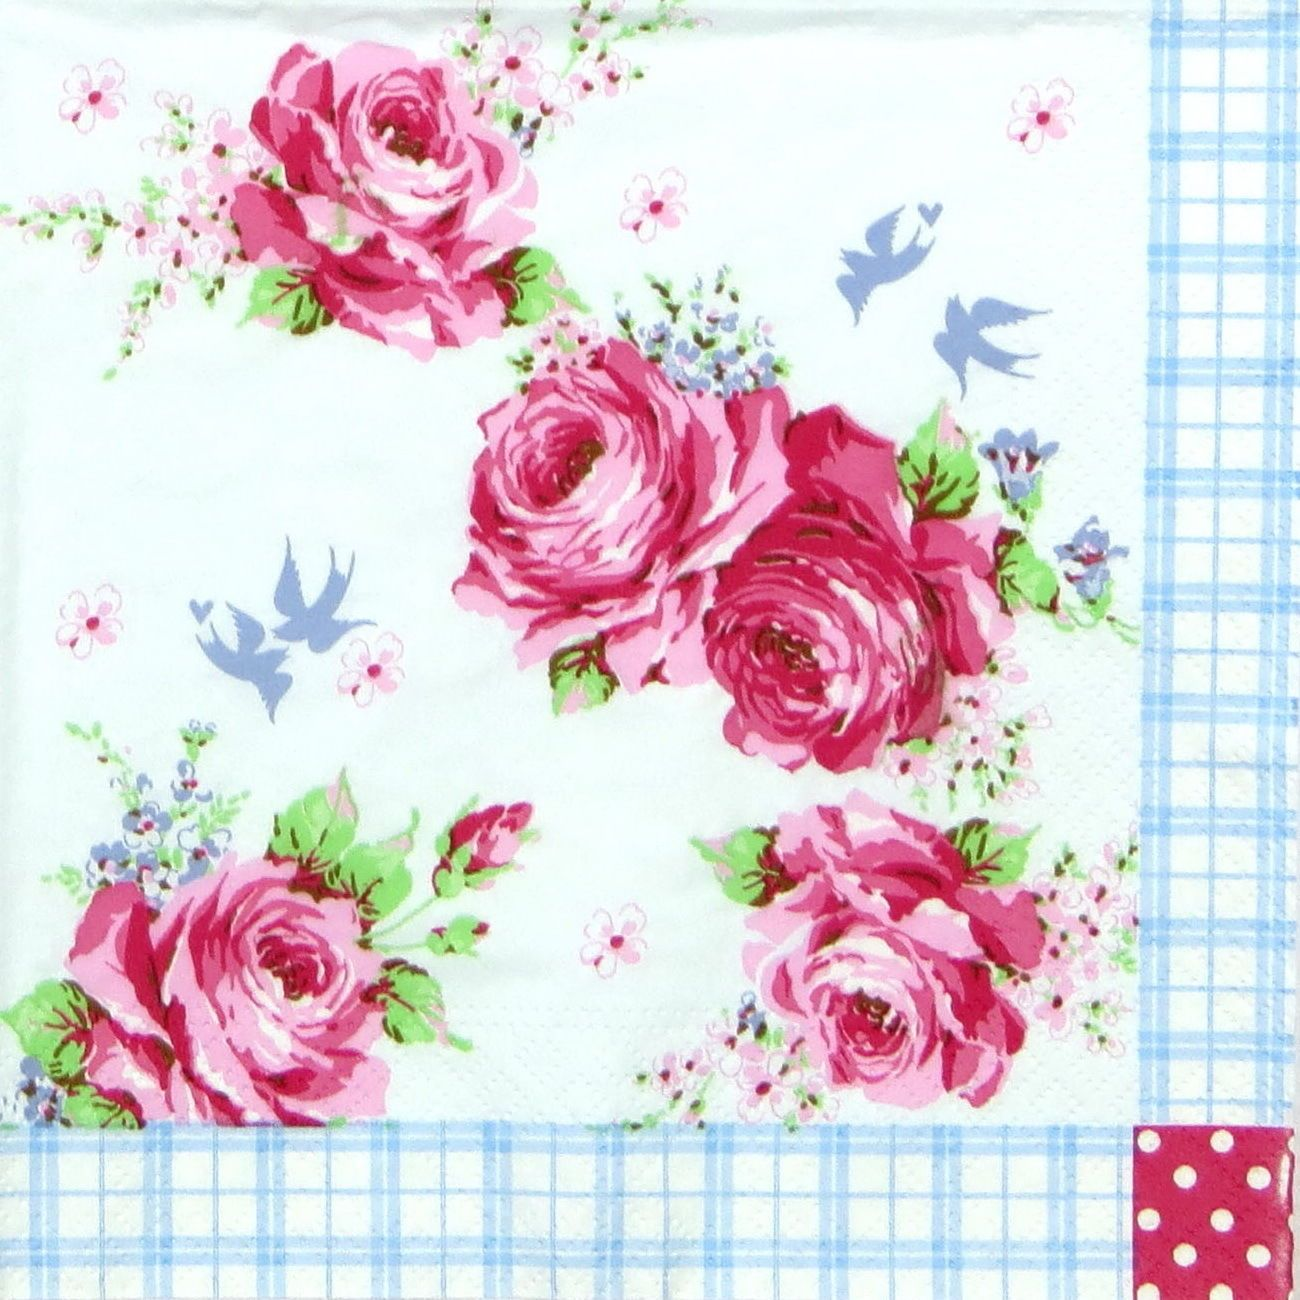 4x Paper Napkins for Decoupage Decopatch Craft Rose Collection